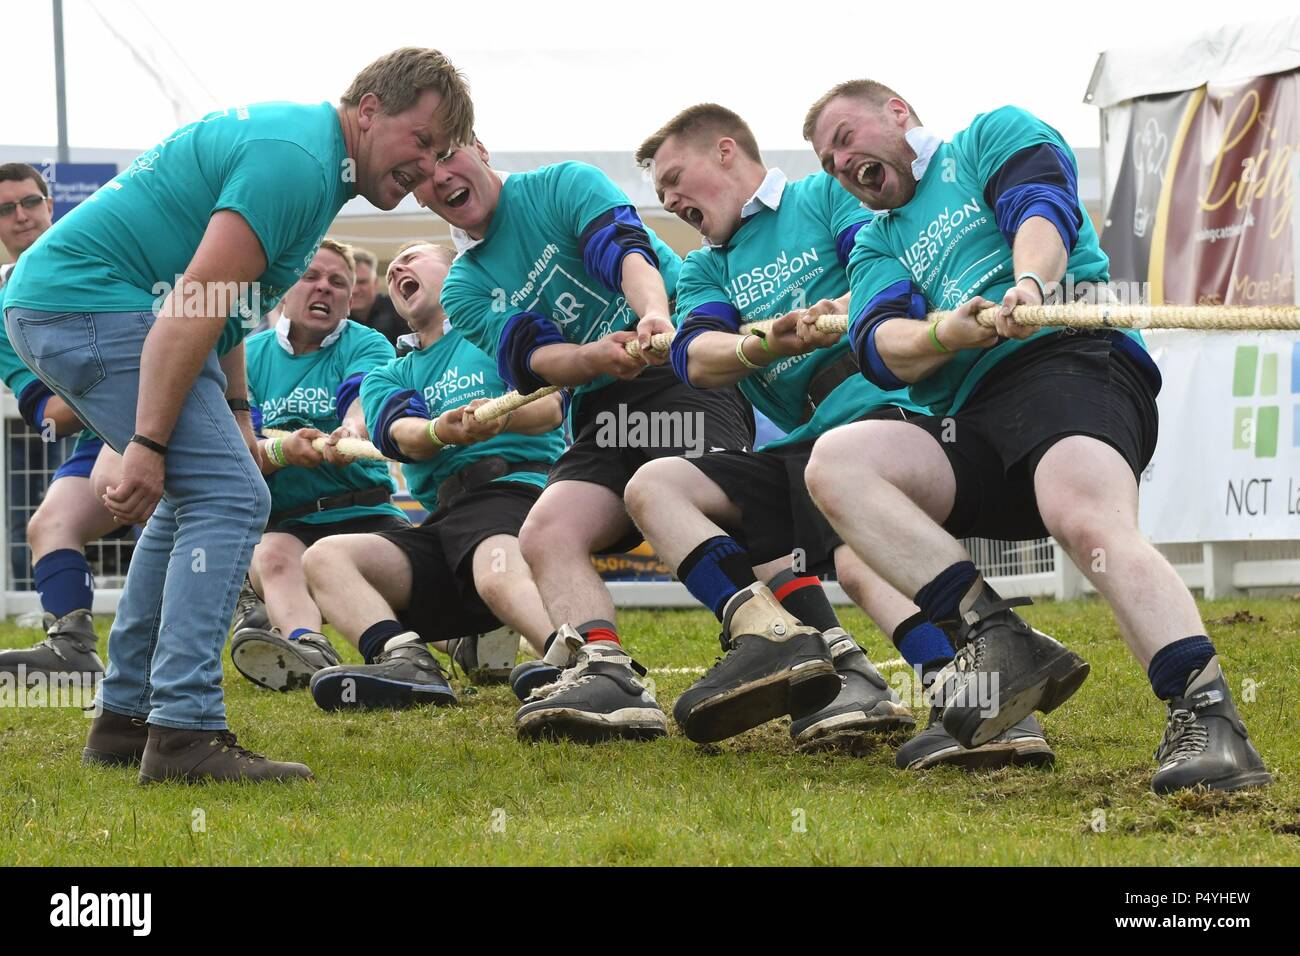 Royal Highland Show, Edinburgh, Scotland:  23 June 2018: Strathearn JAC giving their all in the Young Farmers Tug of War Competition on day three at the Royal Highland Show, Edinburgh Credit: Kay Roxby/Alamy Live News Stock Photo